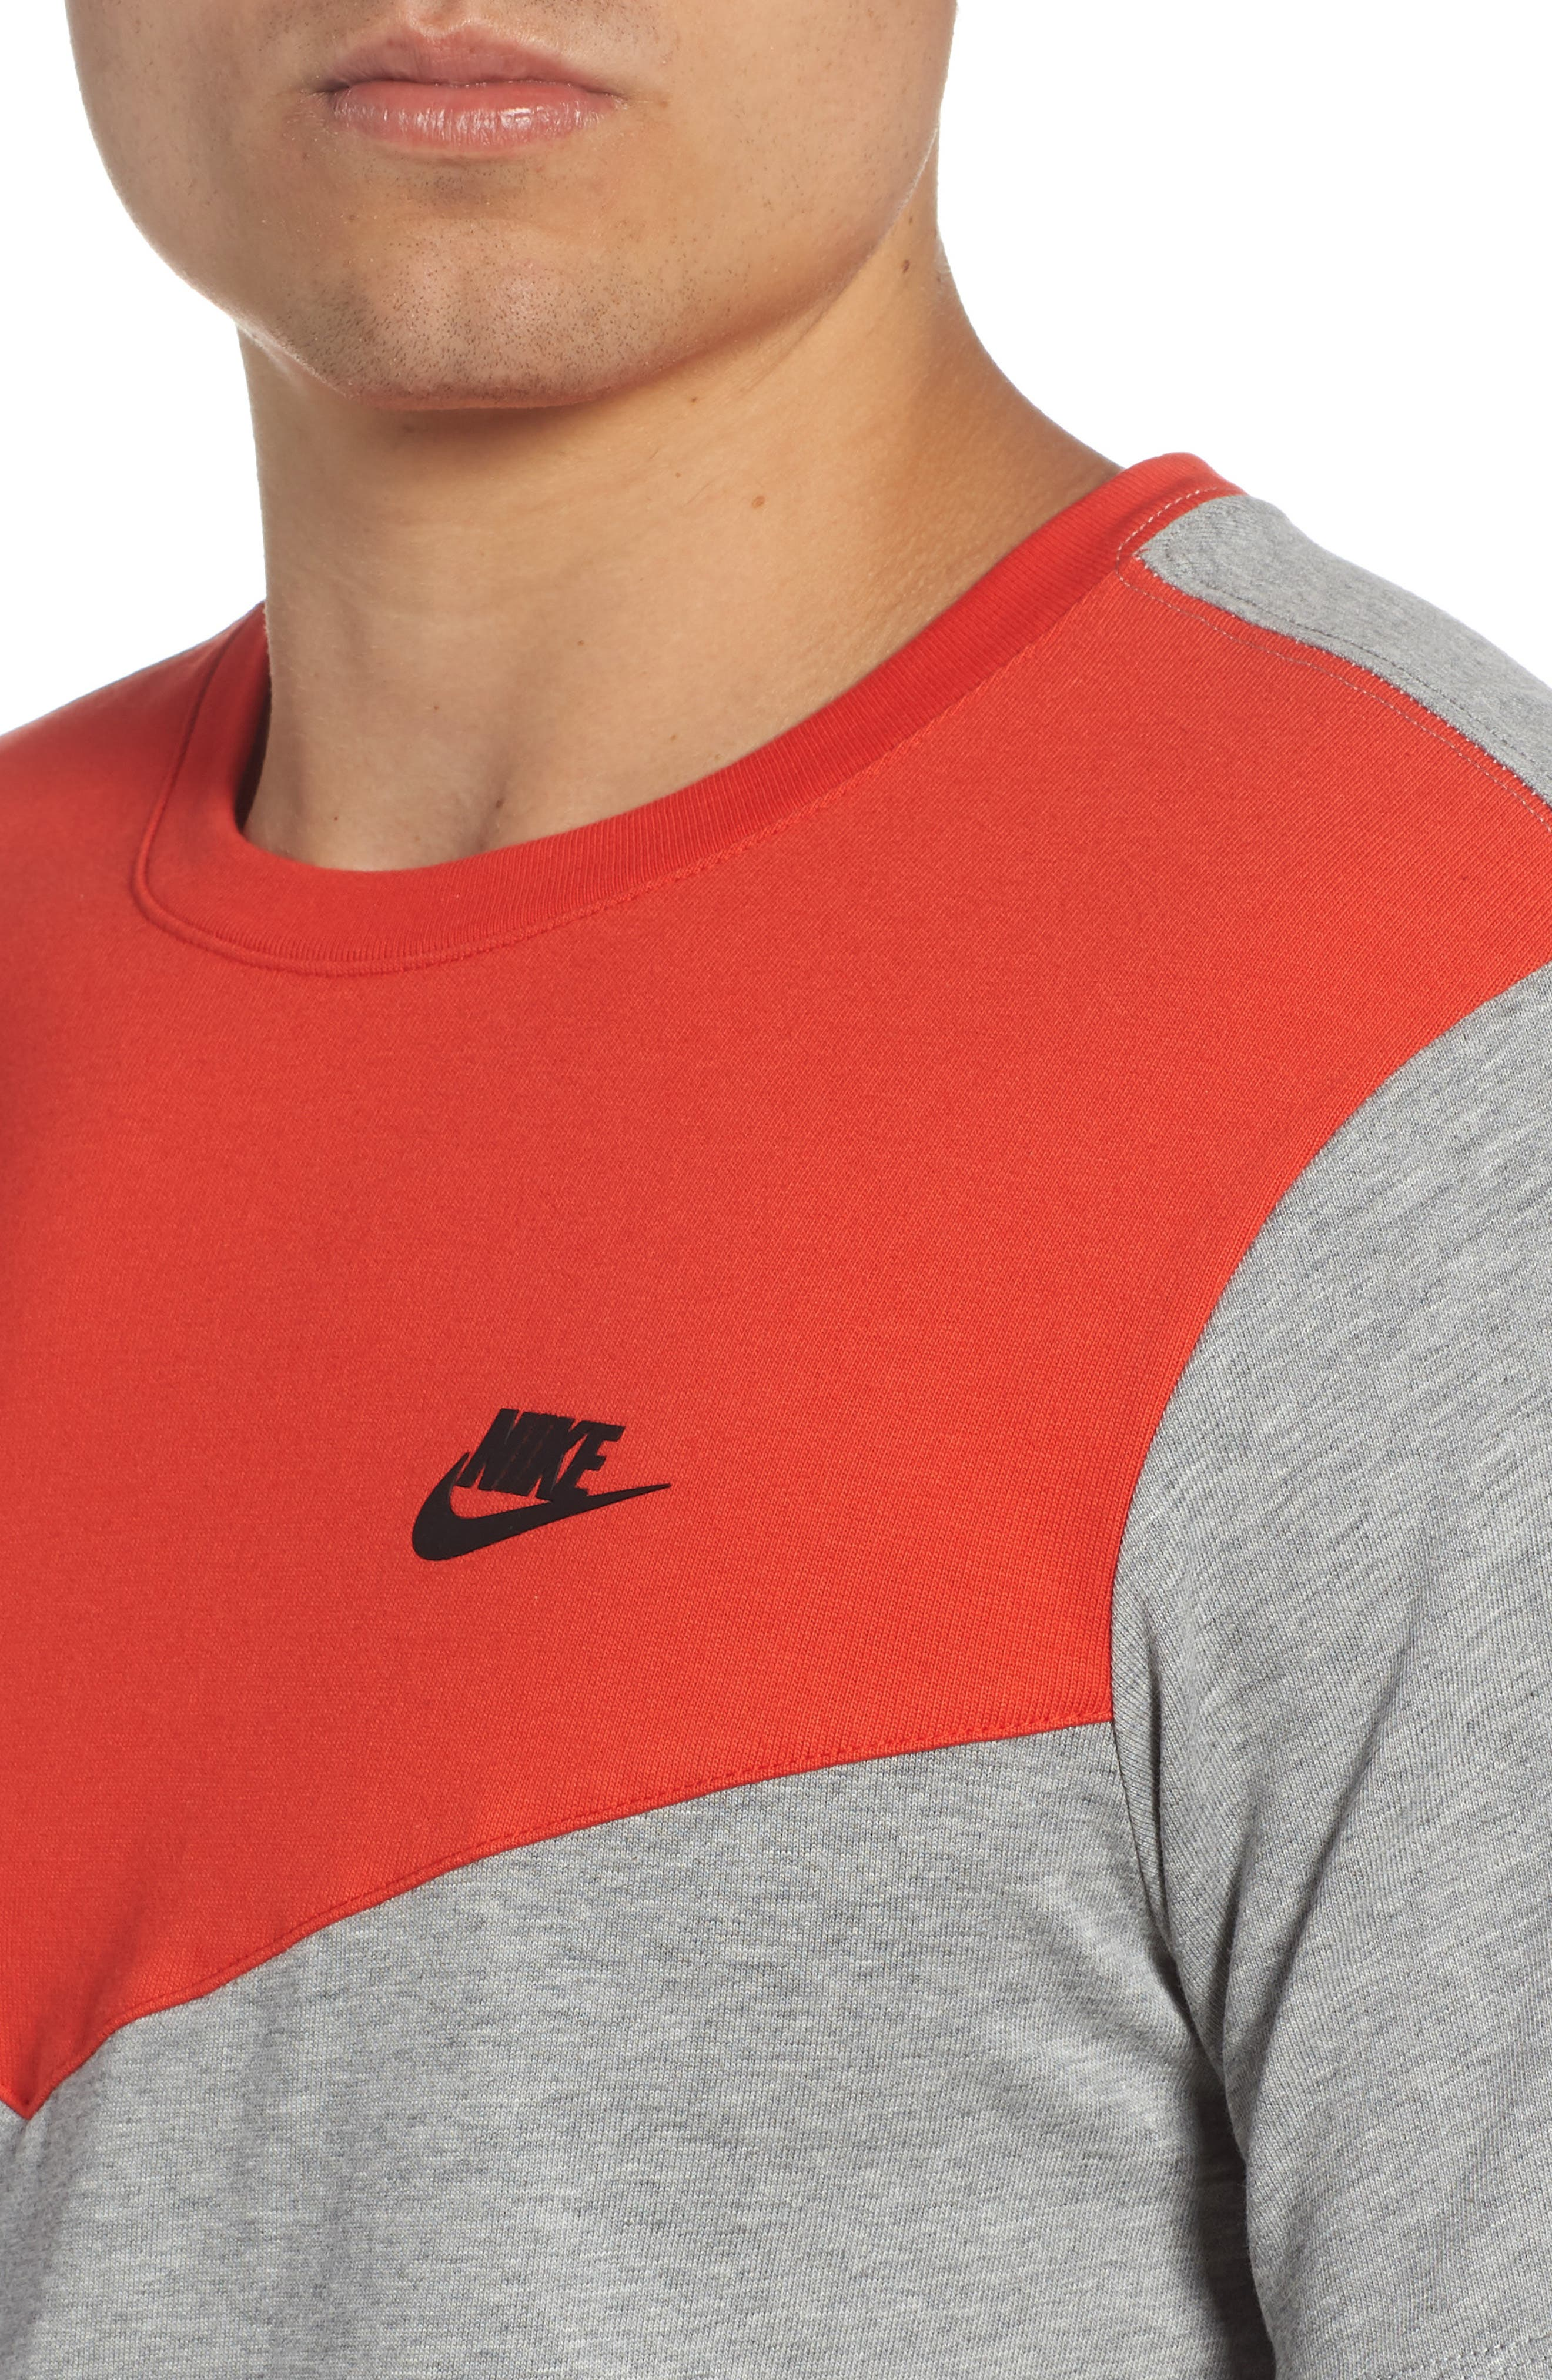 Windrunner Colorblocked T-Shirt,                             Alternate thumbnail 4, color,                             HABANERO RED/ HEATHER/ BLACK